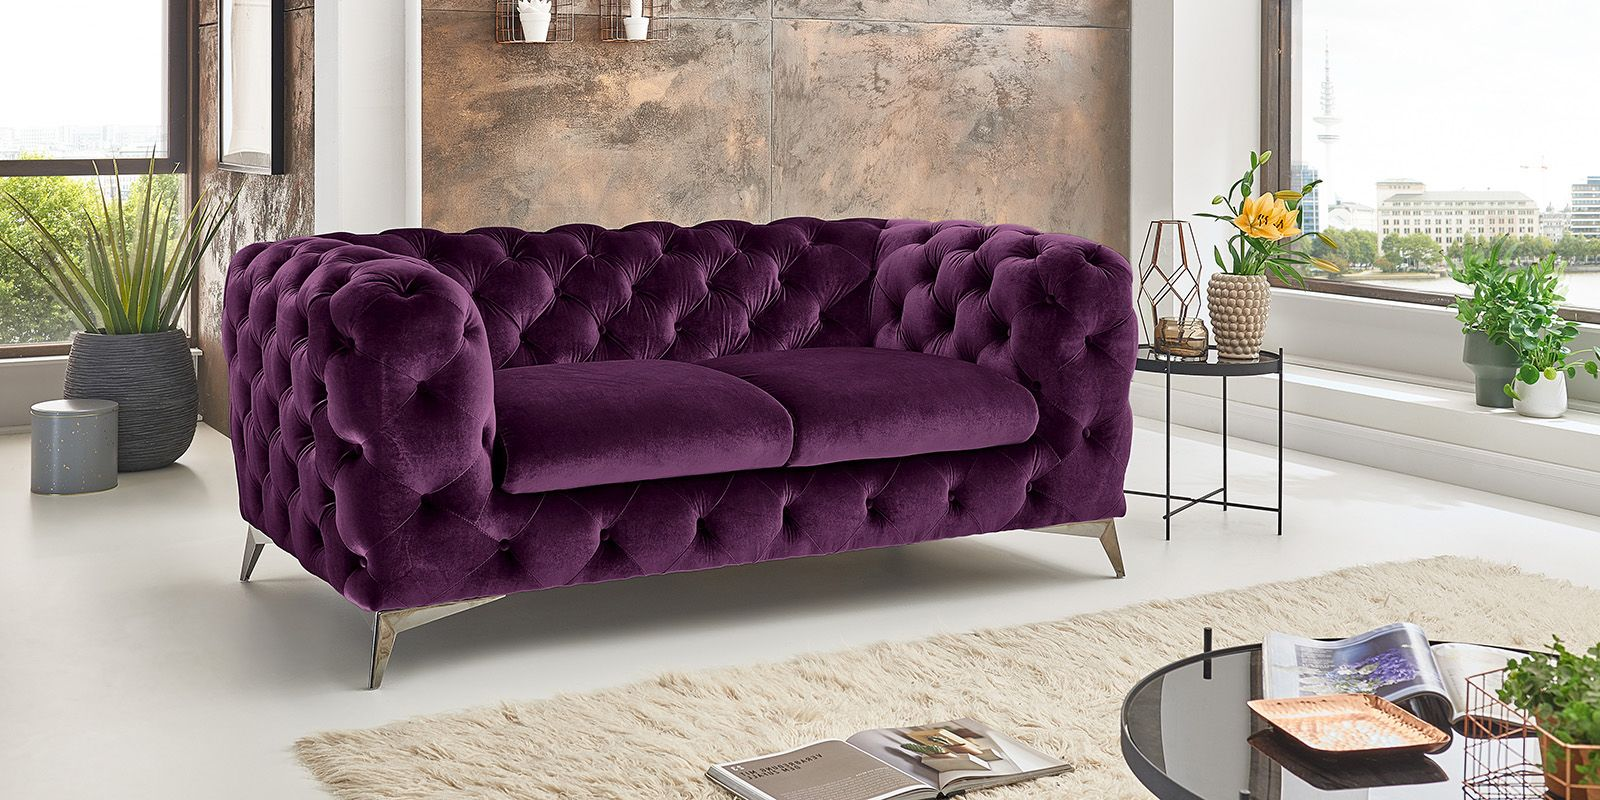 Barock Möbel Bei Otto 2 Sitzer Chesterfield Sofa Big Emma Samt Purple Lila